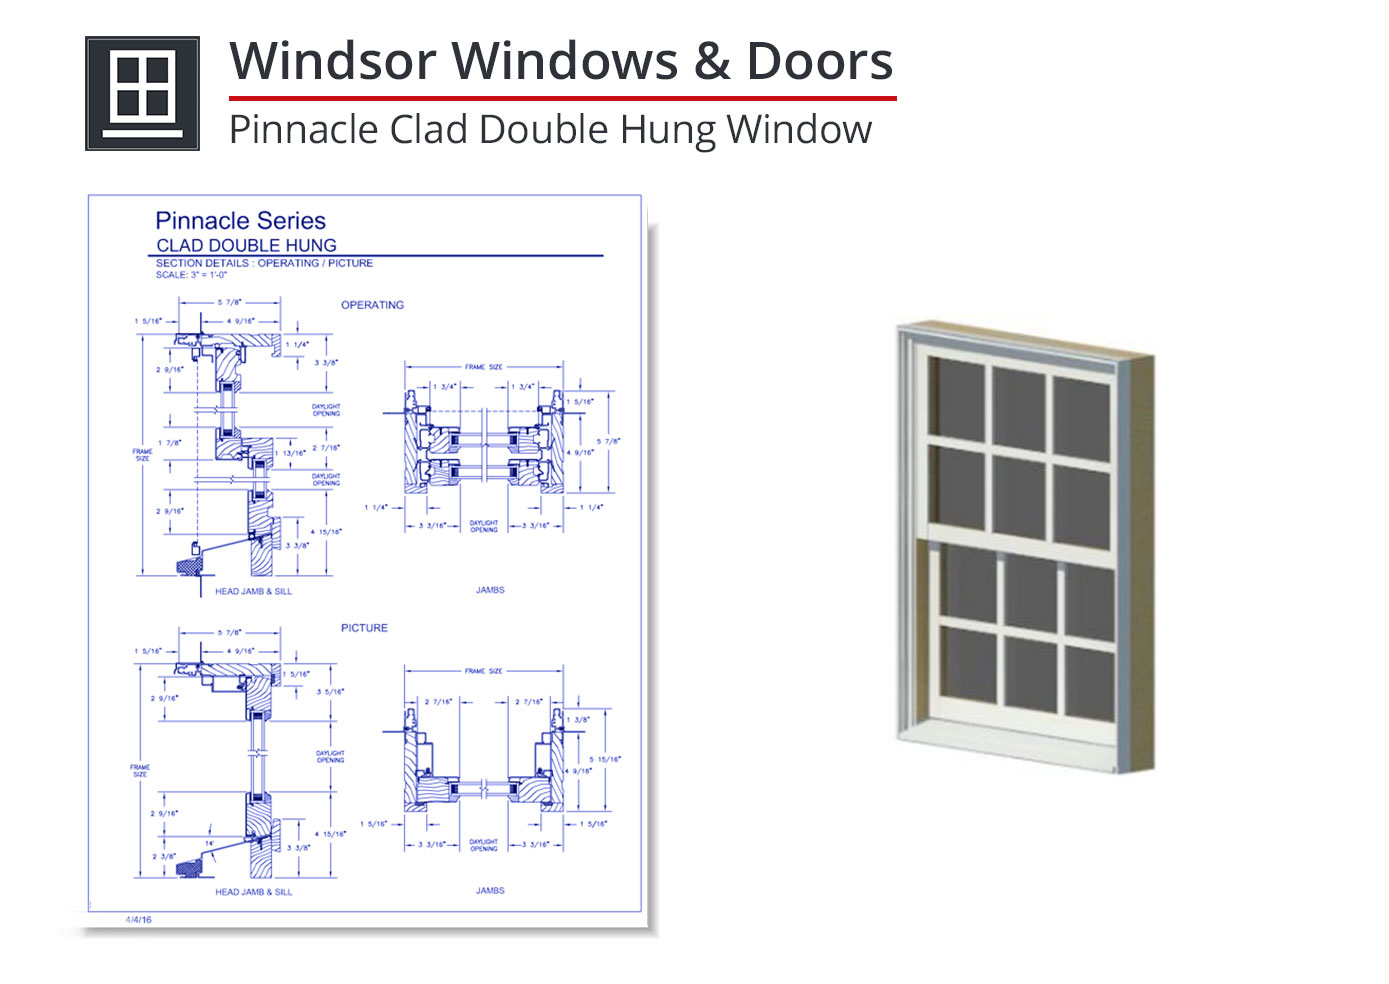 2153-015 Pinnacle Clad Double Hung Window